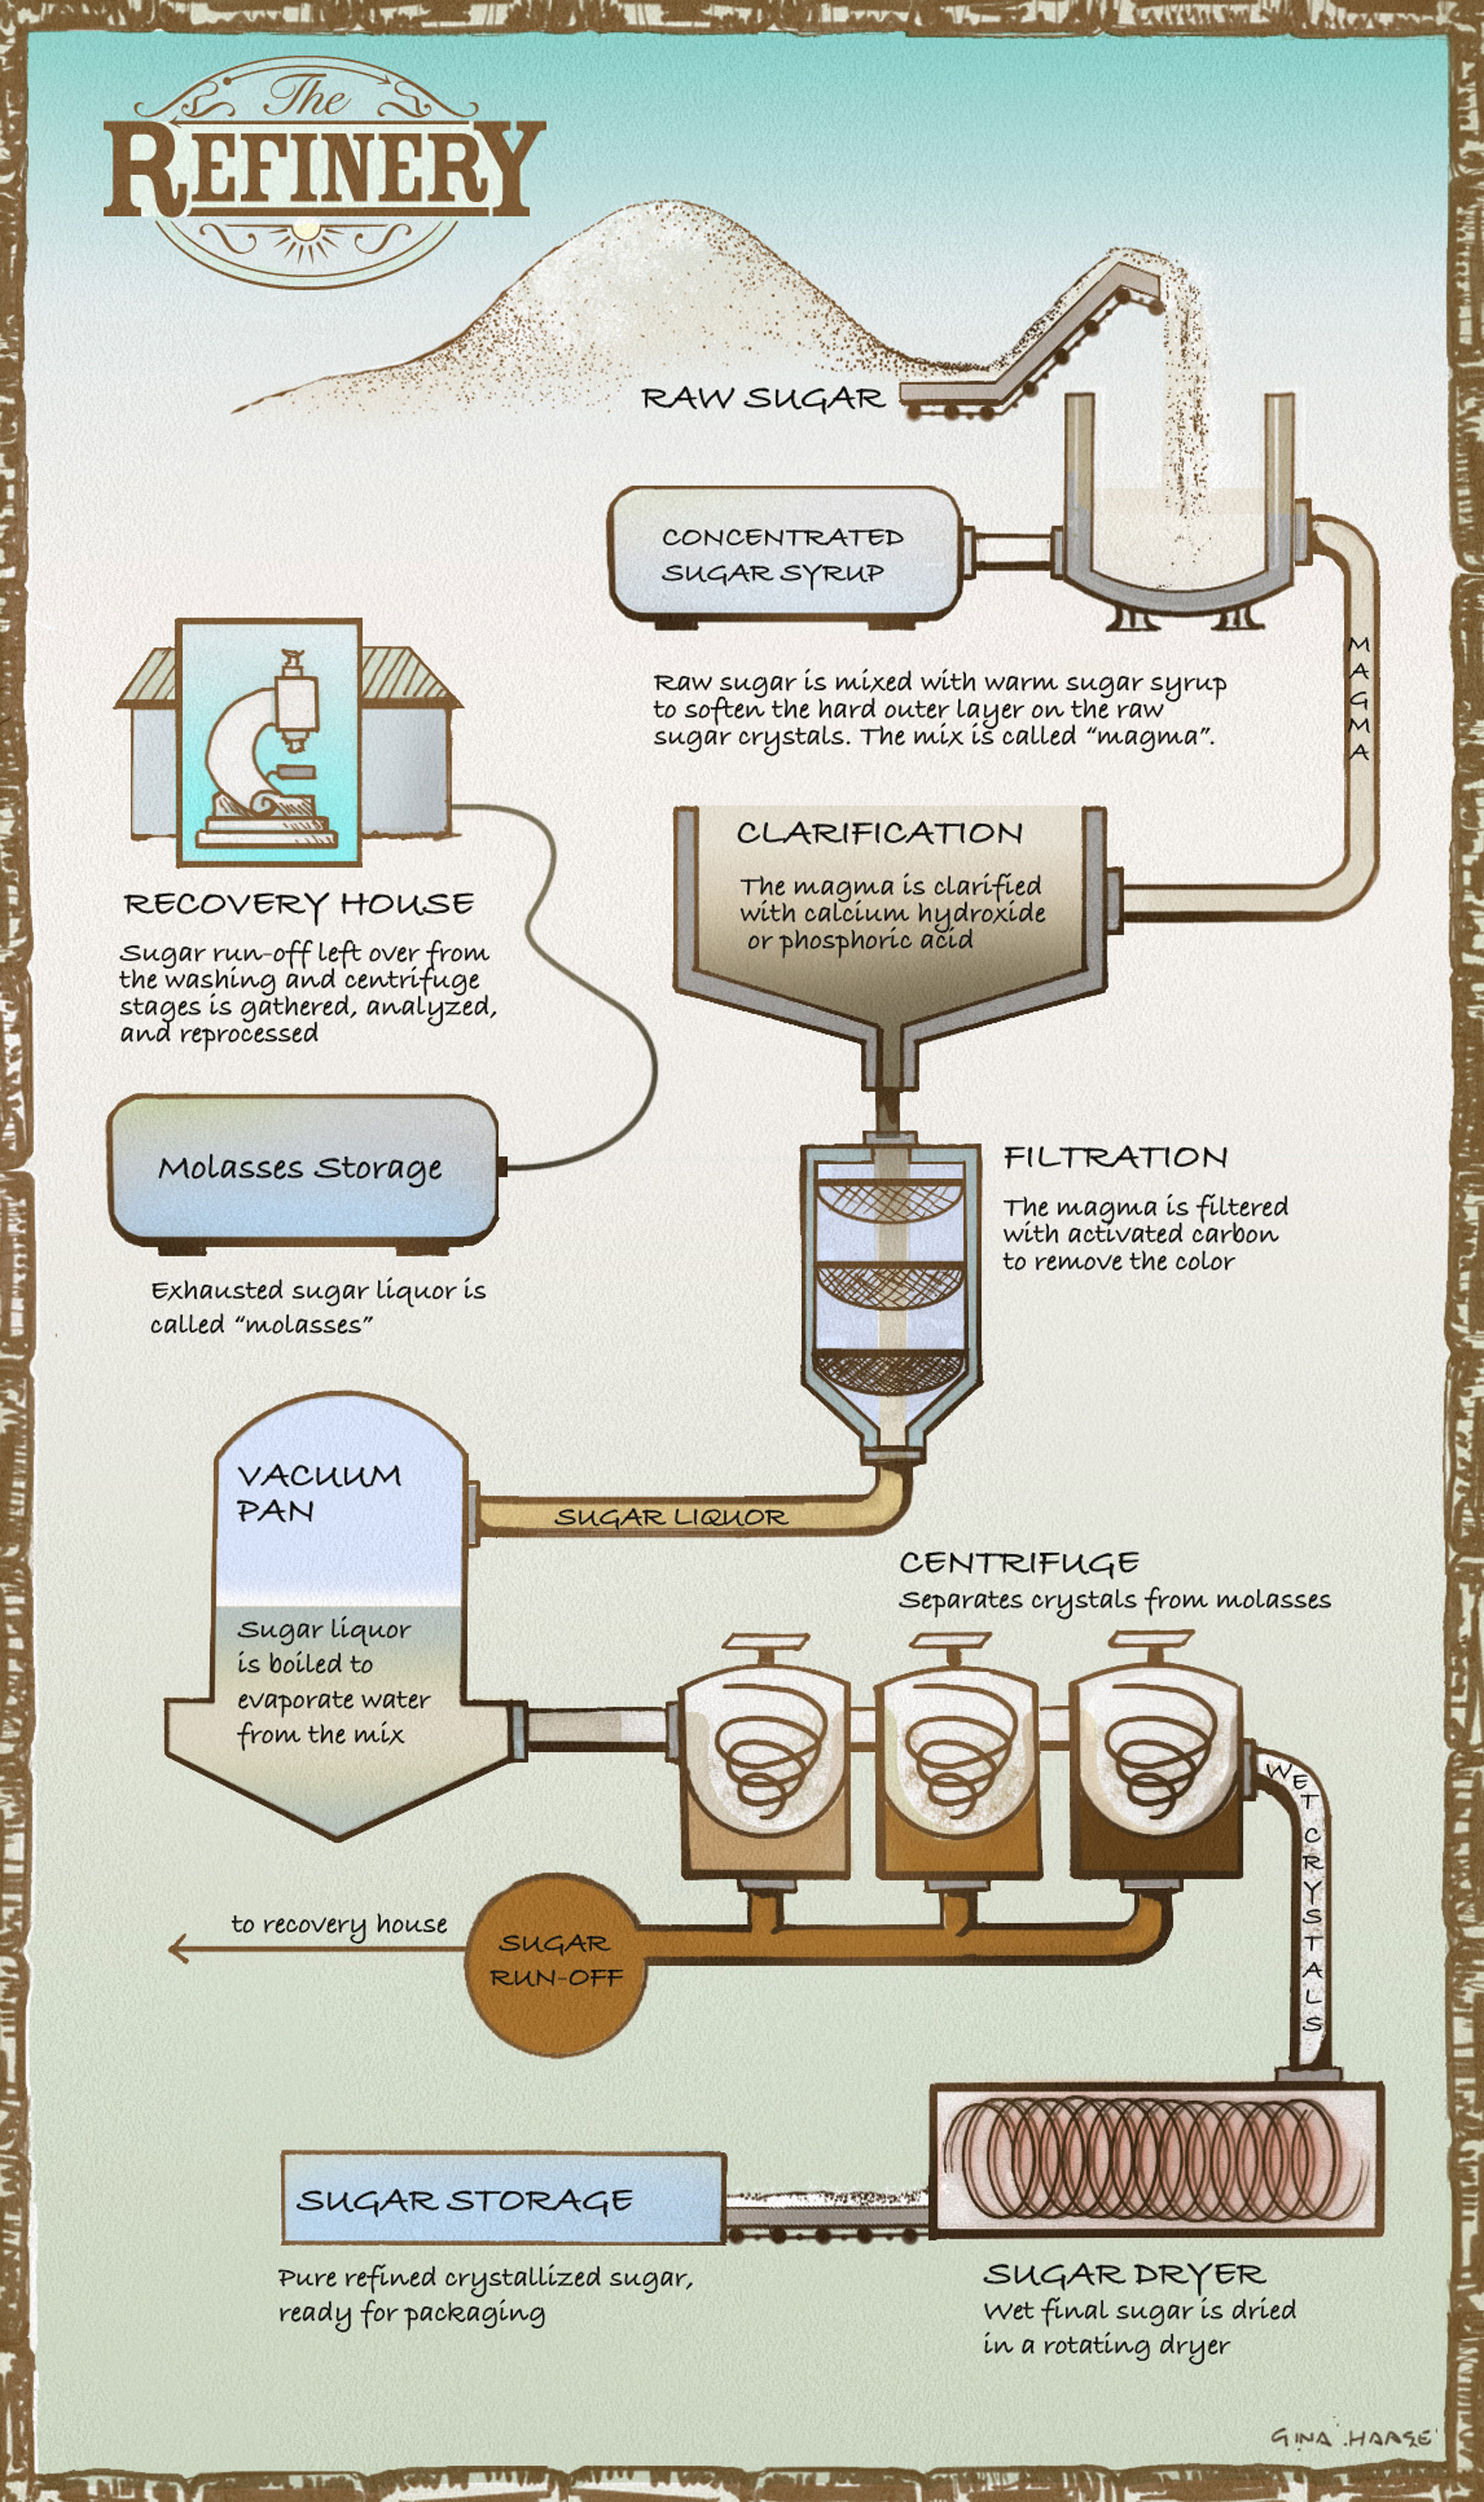 The process of refining sugar. Illustration by Gina Haase.